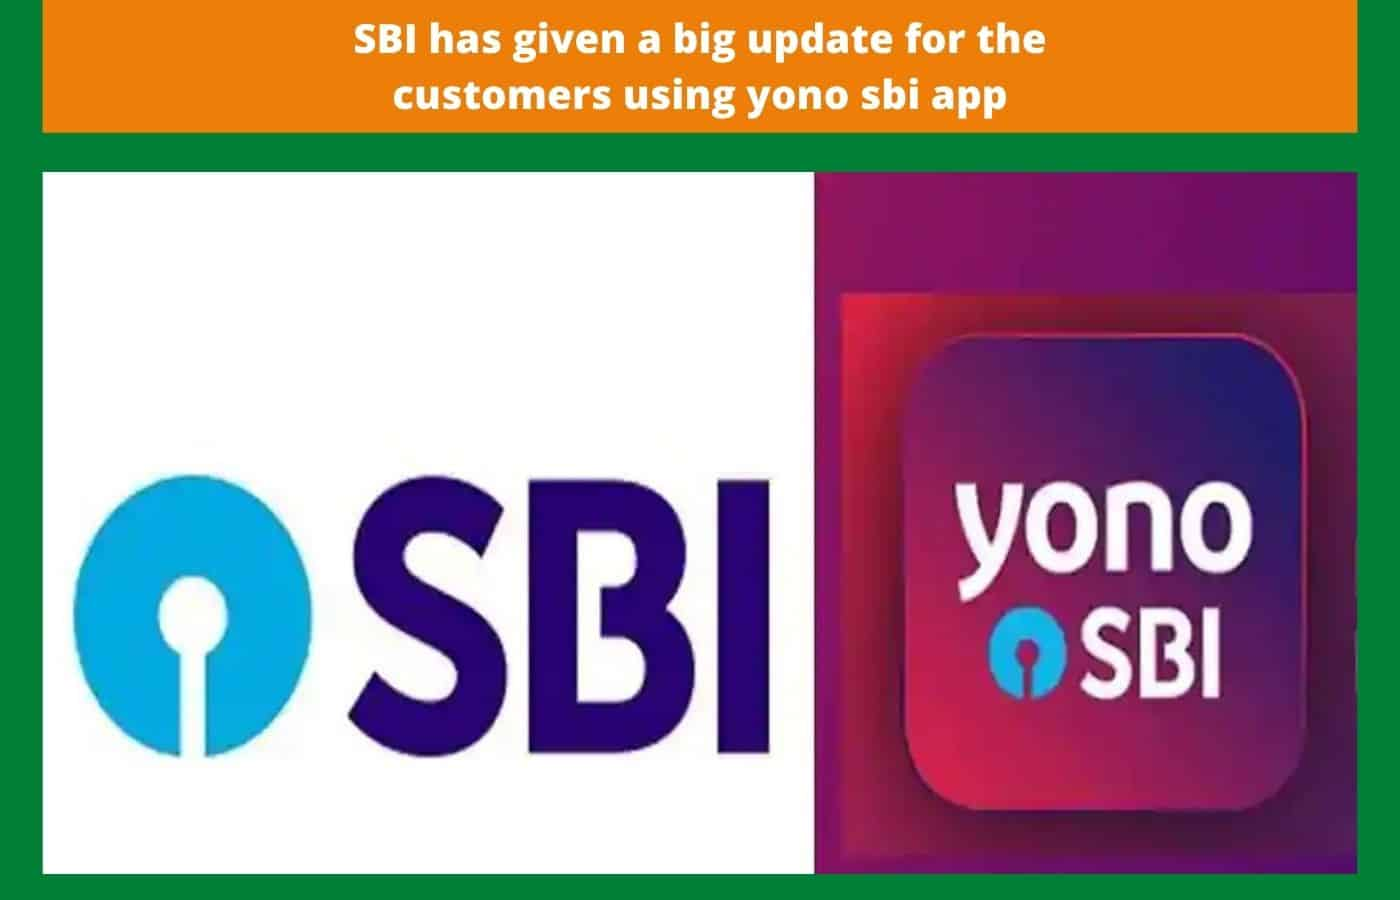 SBI has given a big update for the customers using yono sbi app